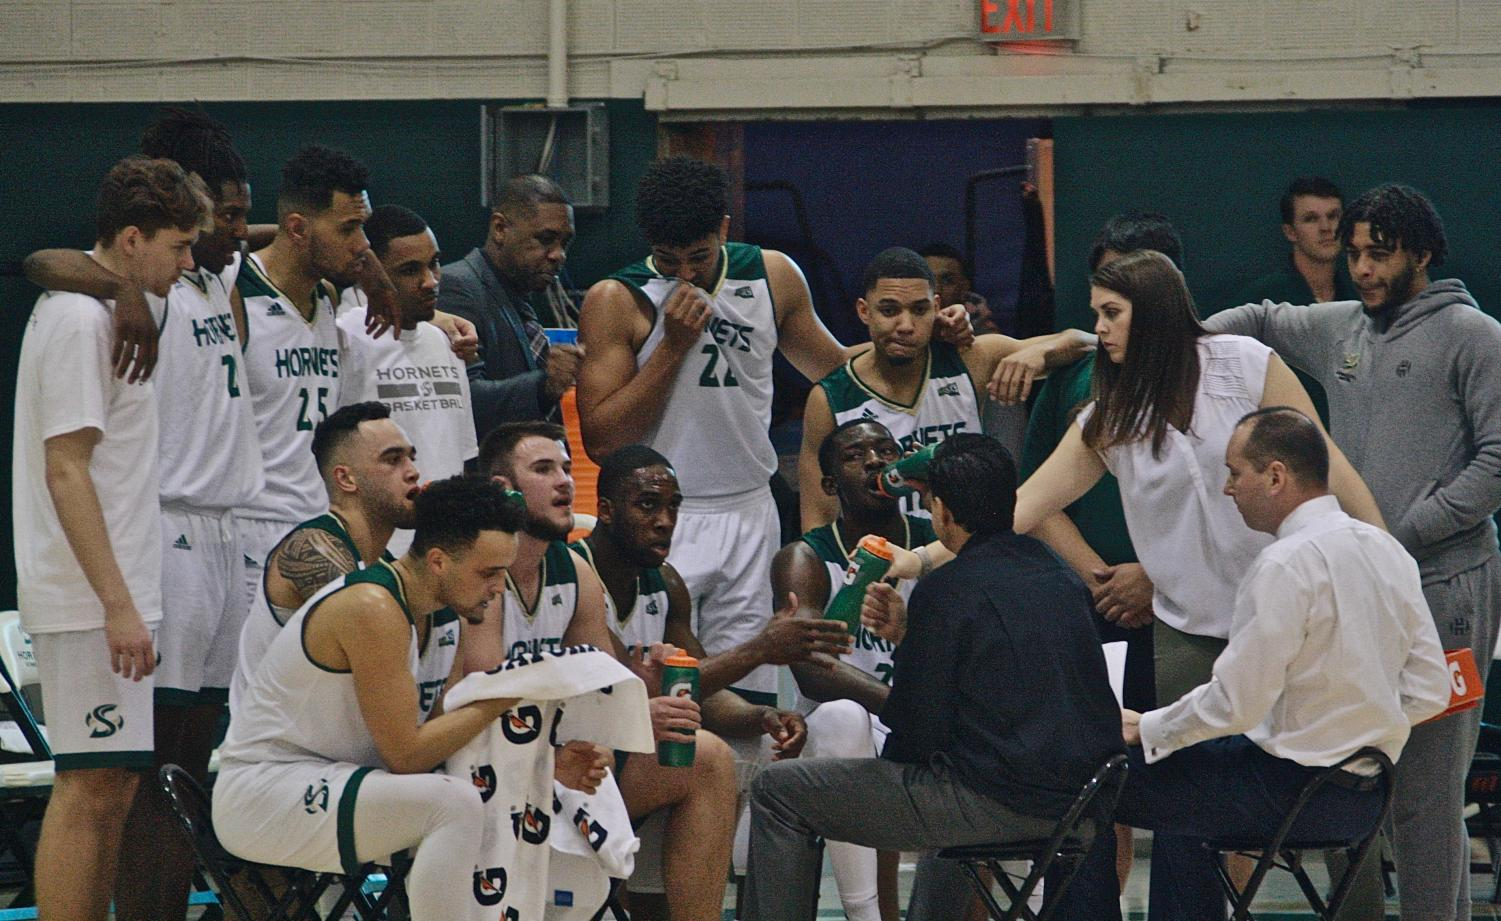 The Sac State men's basketball team listens to head coach Brian Katz during a timeout on Thursday. The Hornets defeated Montana State 70-67 to improve its record to 14-14.